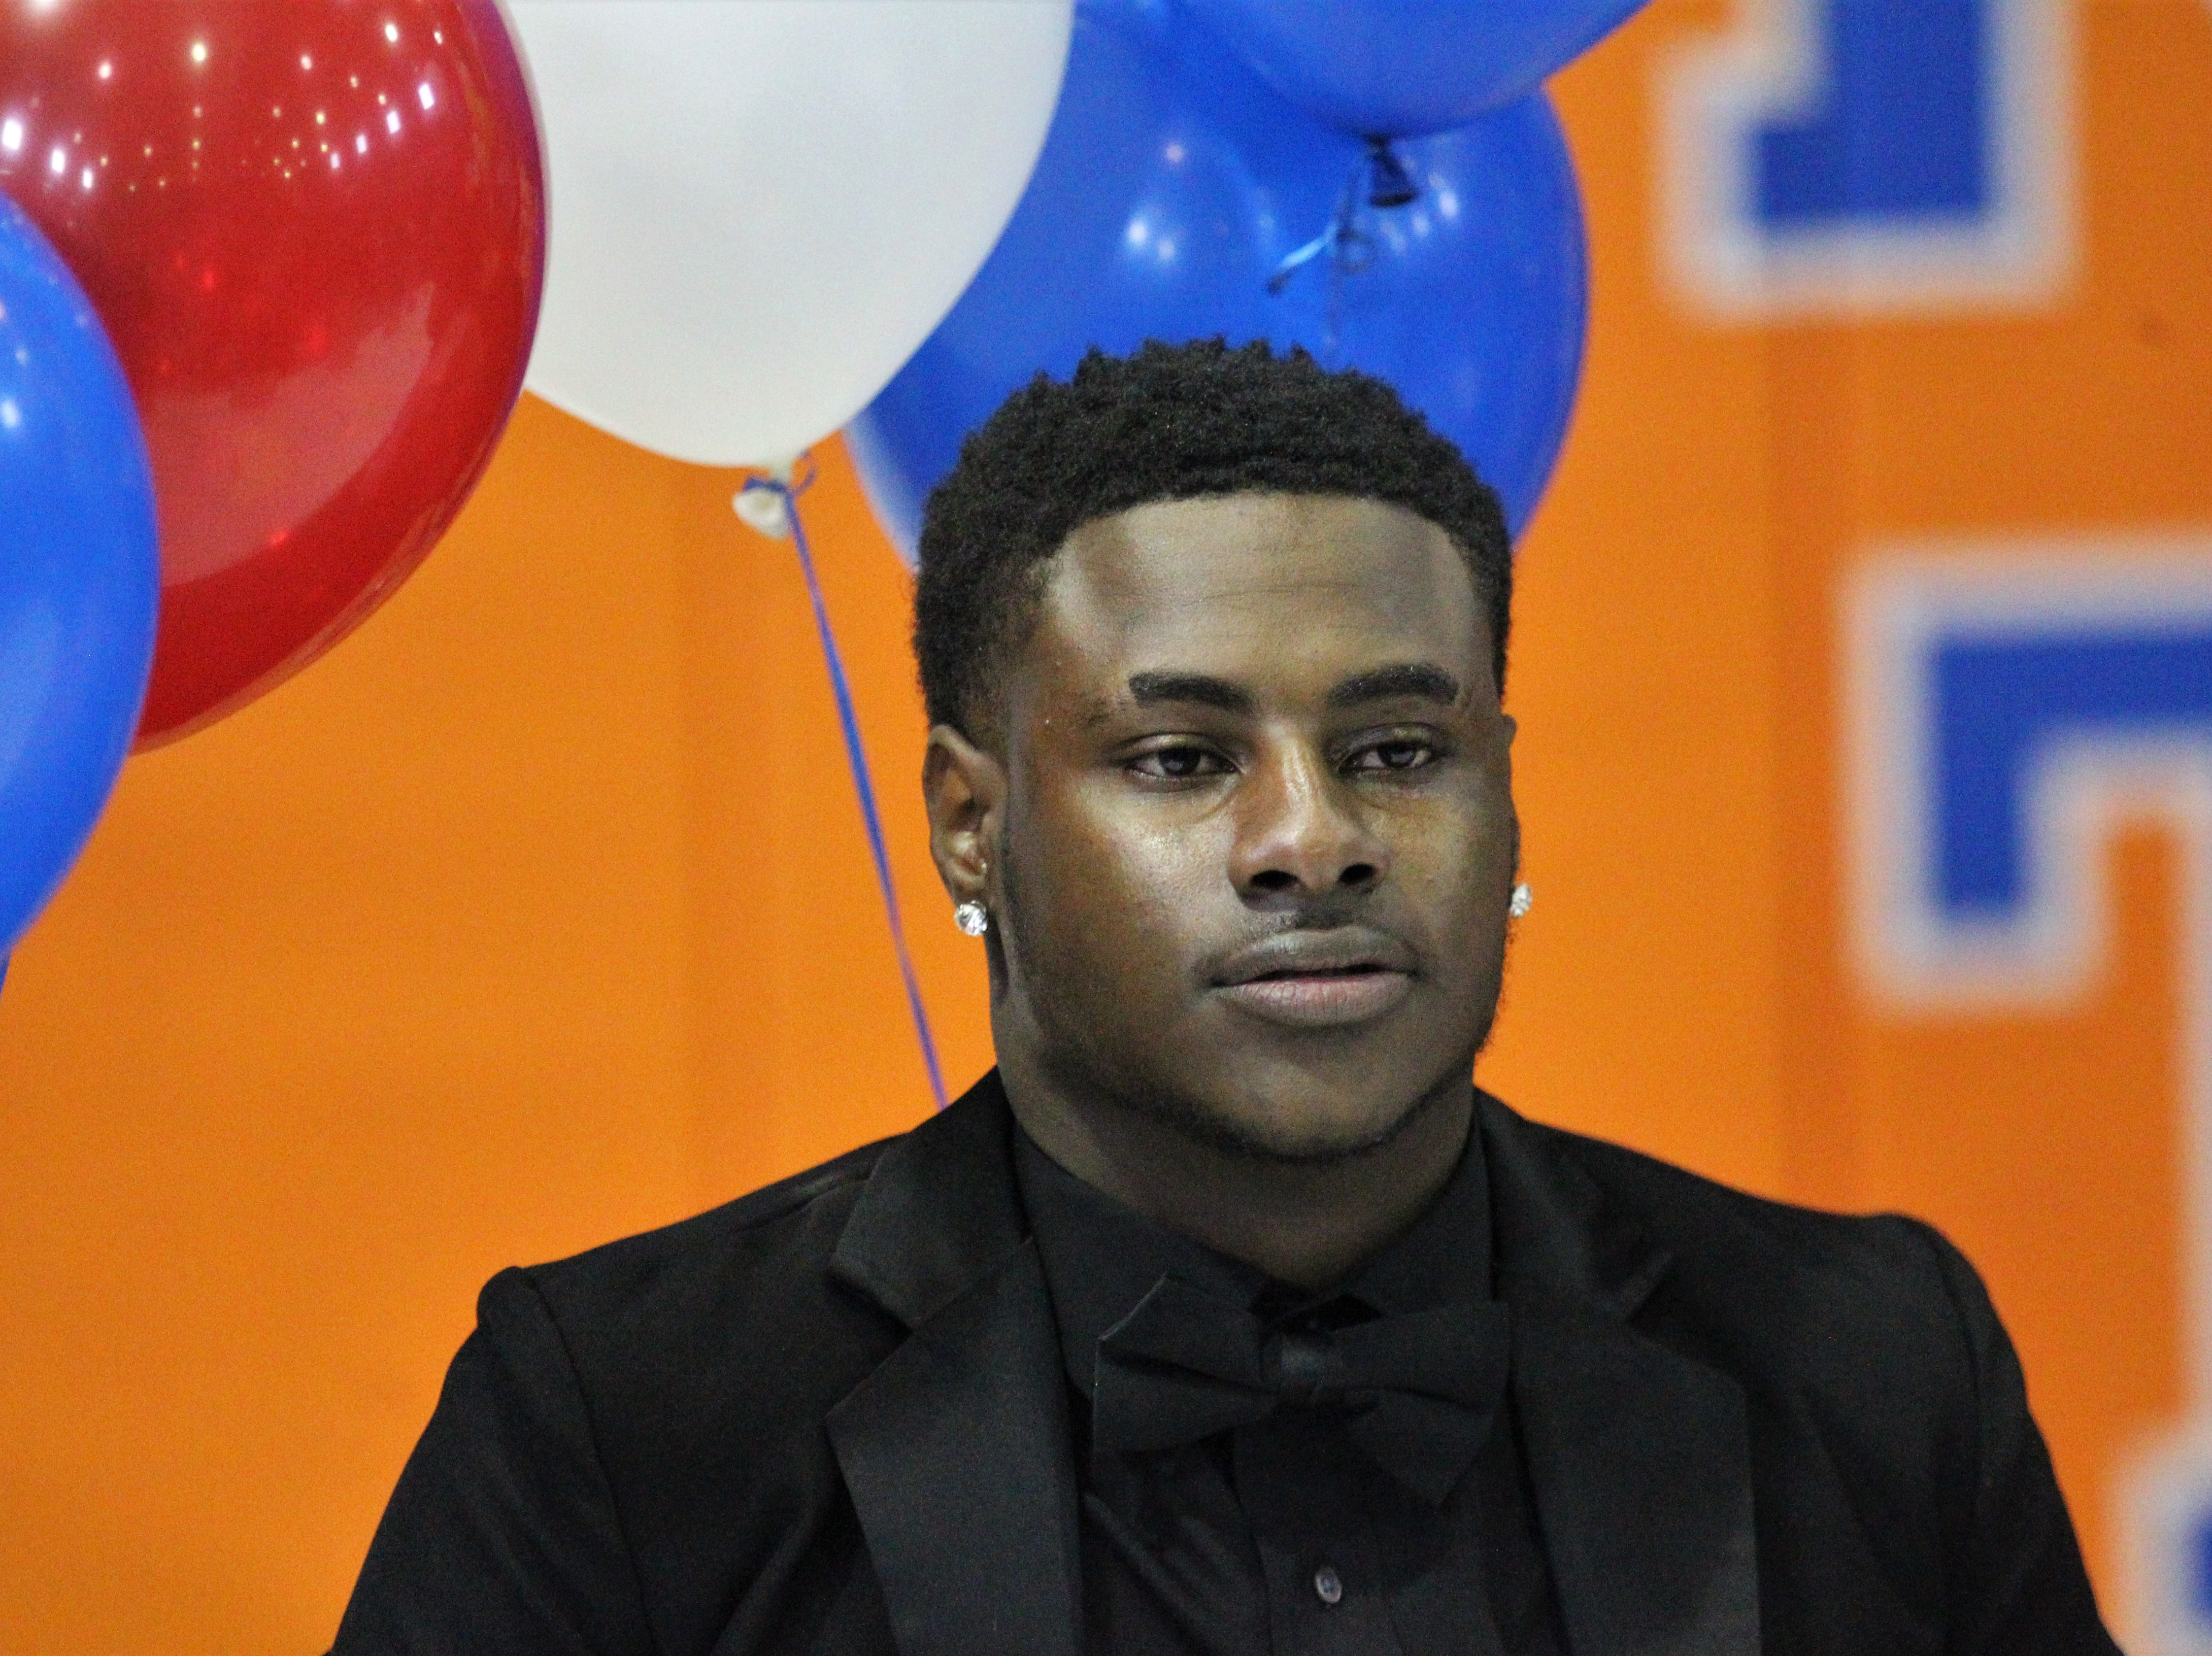 Jefferson County cornerback Zhyki Price waits to sign with Albany State during Jefferson County's signing day ceremony on Feb. 13, 2019.